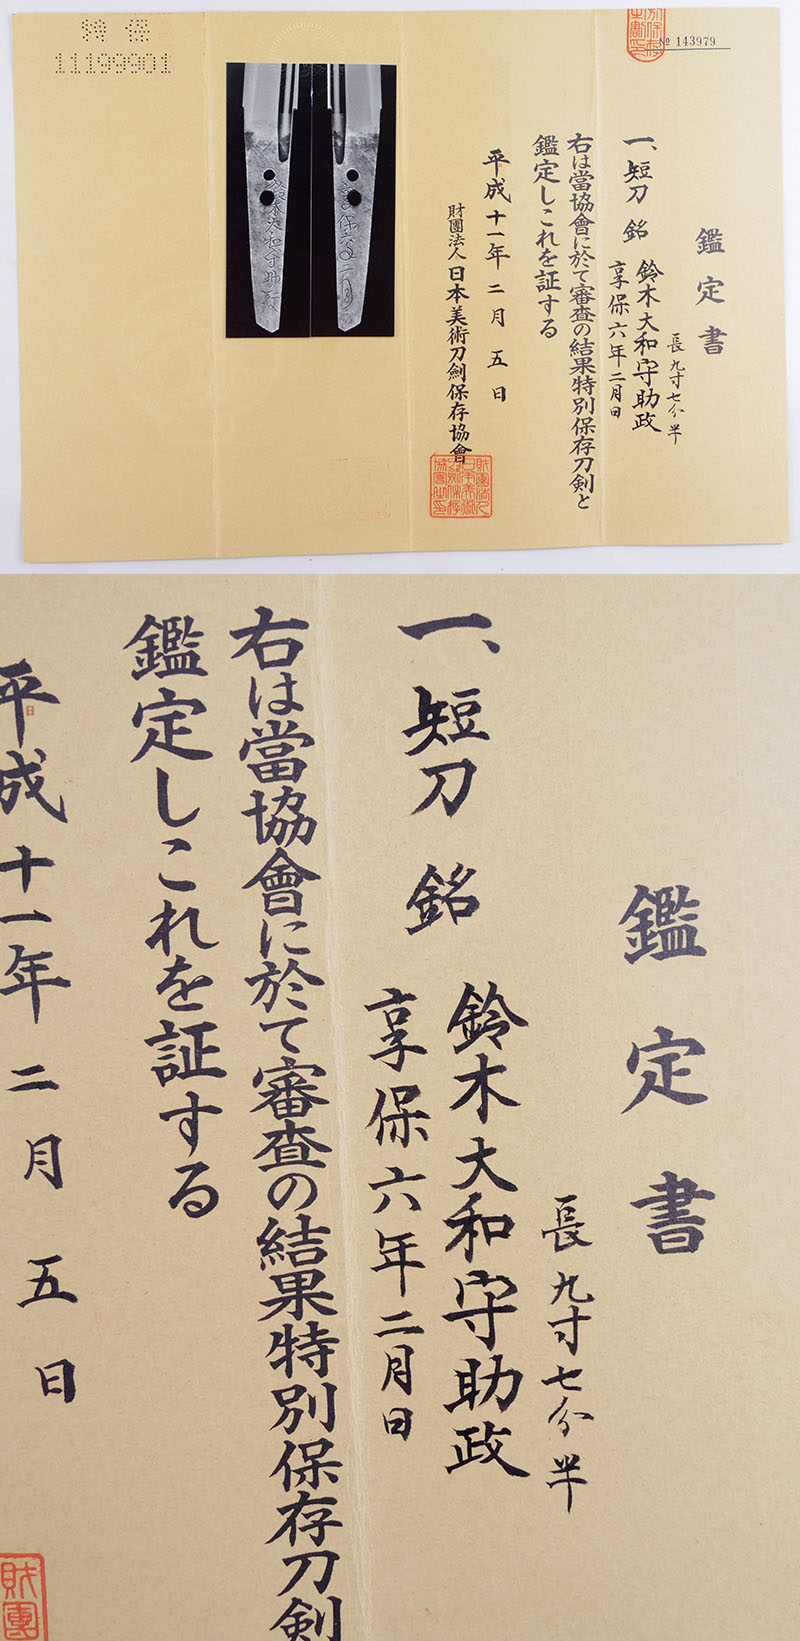 鈴木大和守助政 Picture of Certificate